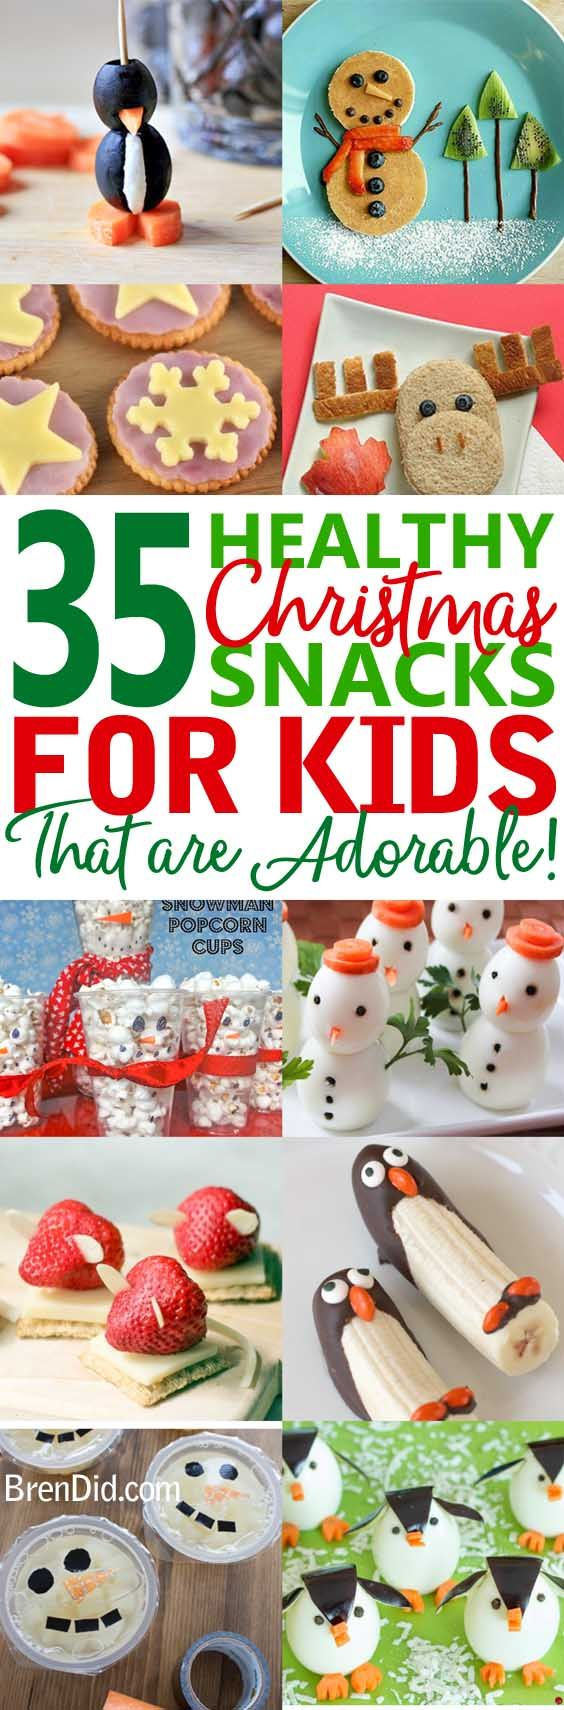 Healthy Christmas treats for kids – Cute & Healthy Christmas snacks for kids holiday parties, winter parties, and lunch box surprises. Get the easy recipes today! #healthysnacks #classroomparty #healthytreats